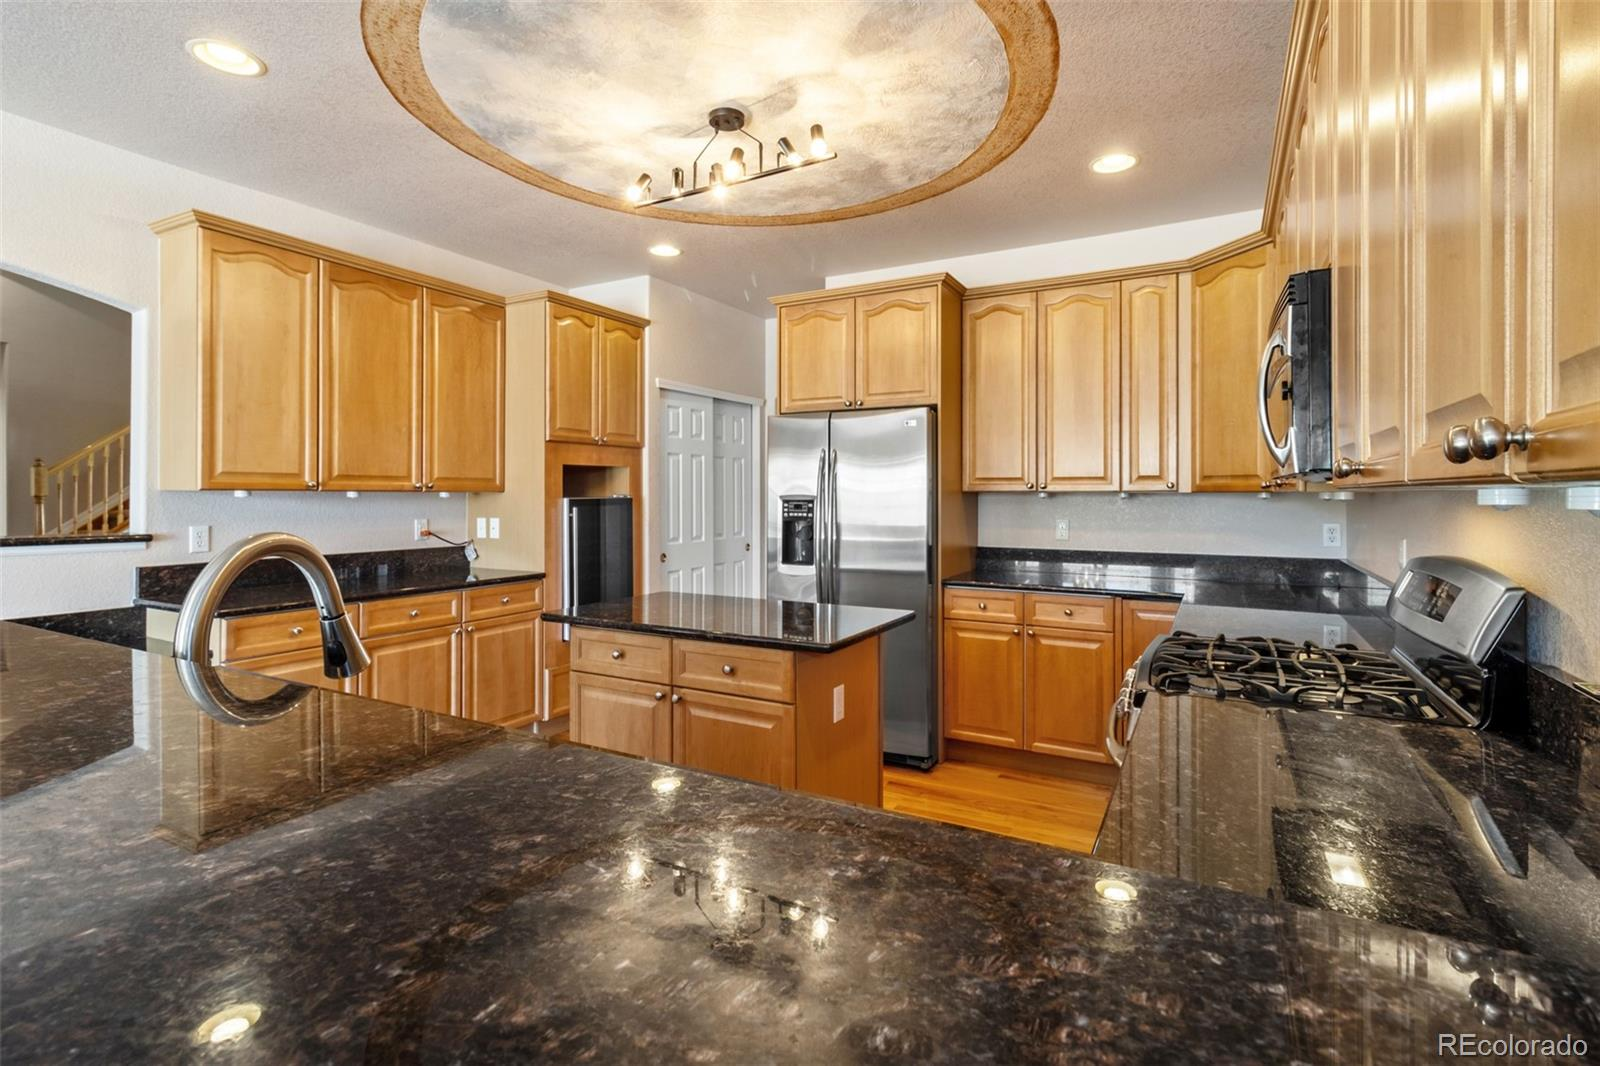 High end cabinets and countertops